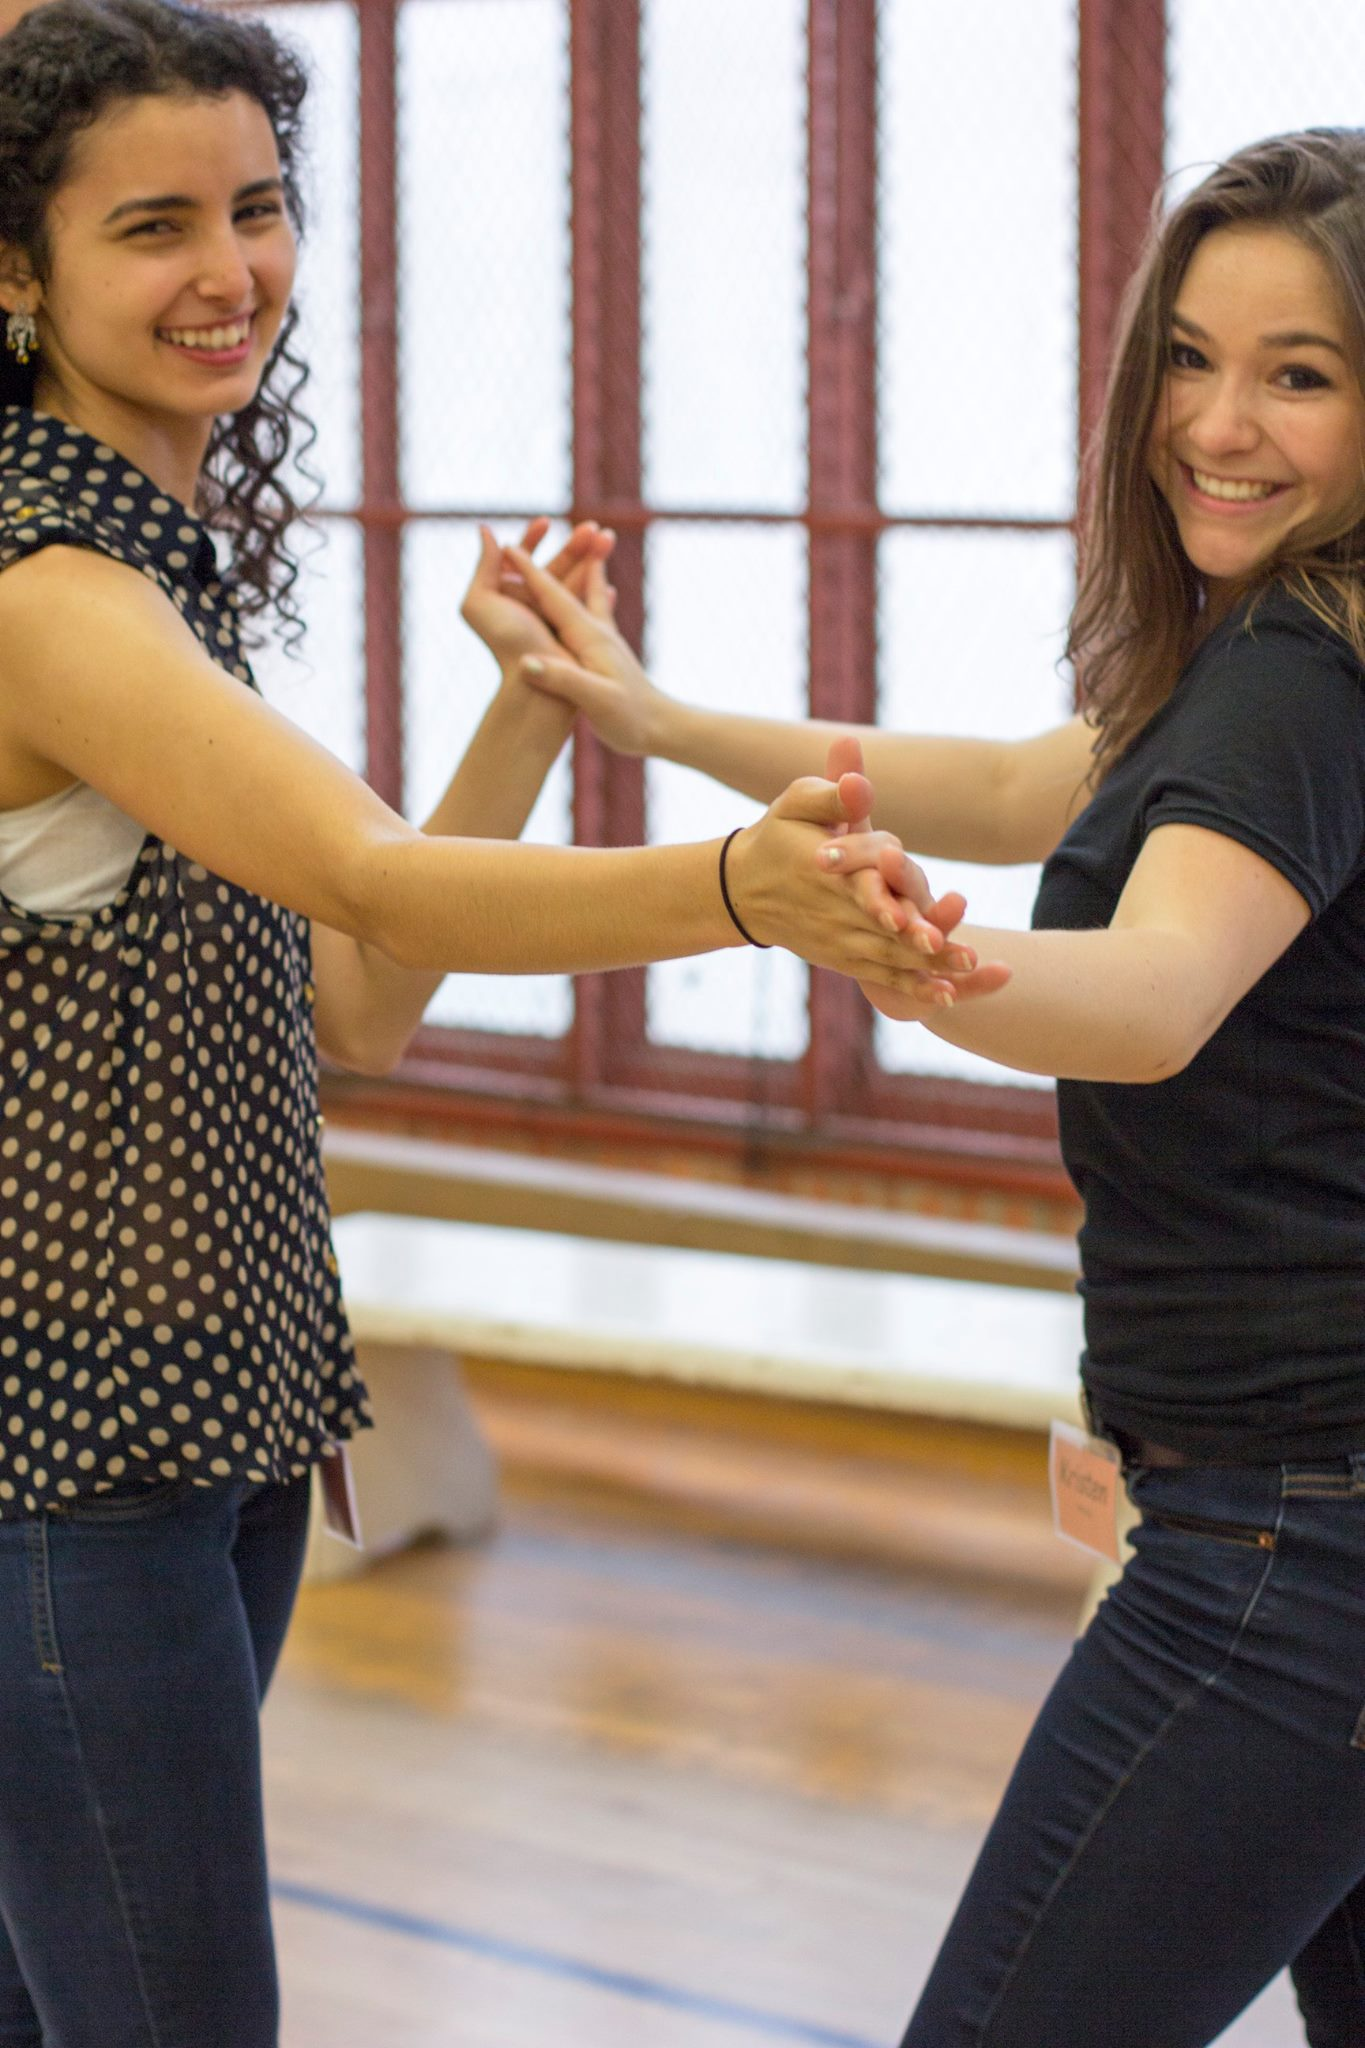 LGBTQ Dance Lessons in Austin